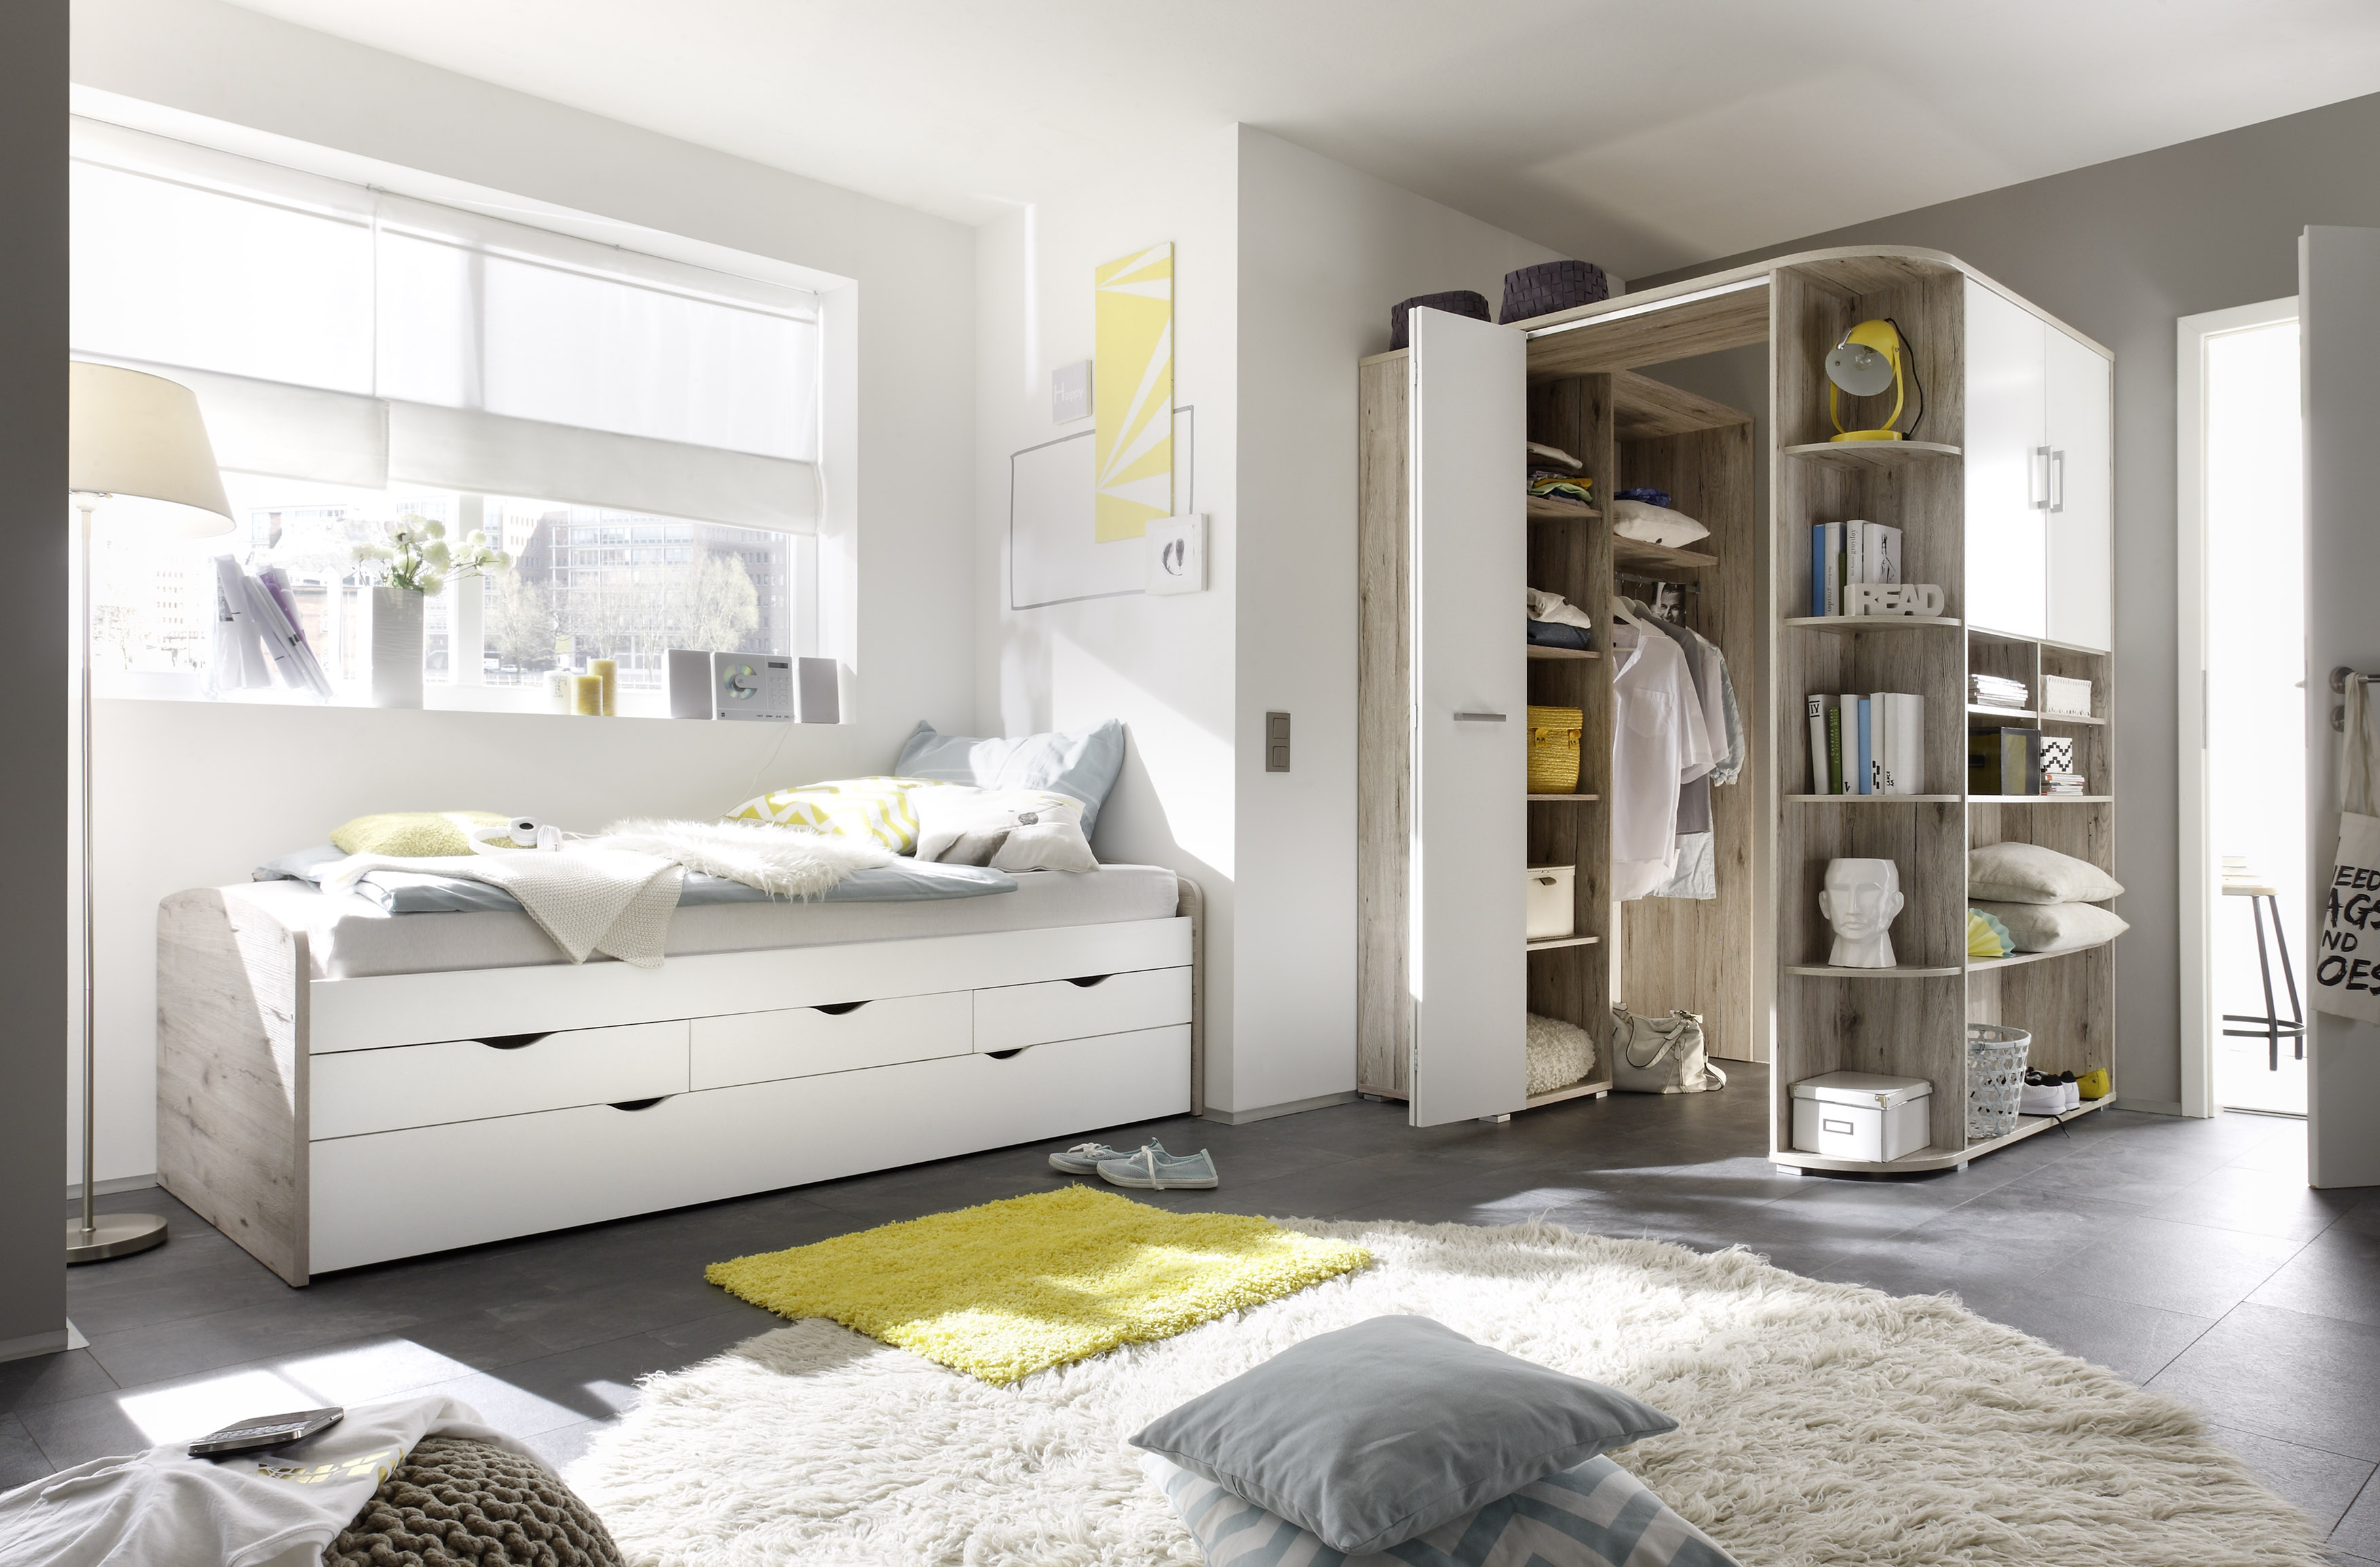 gro artig begehbarer kleiderschrank eckschrank zeitgen ssisch die kinderzimmer design ideen. Black Bedroom Furniture Sets. Home Design Ideas